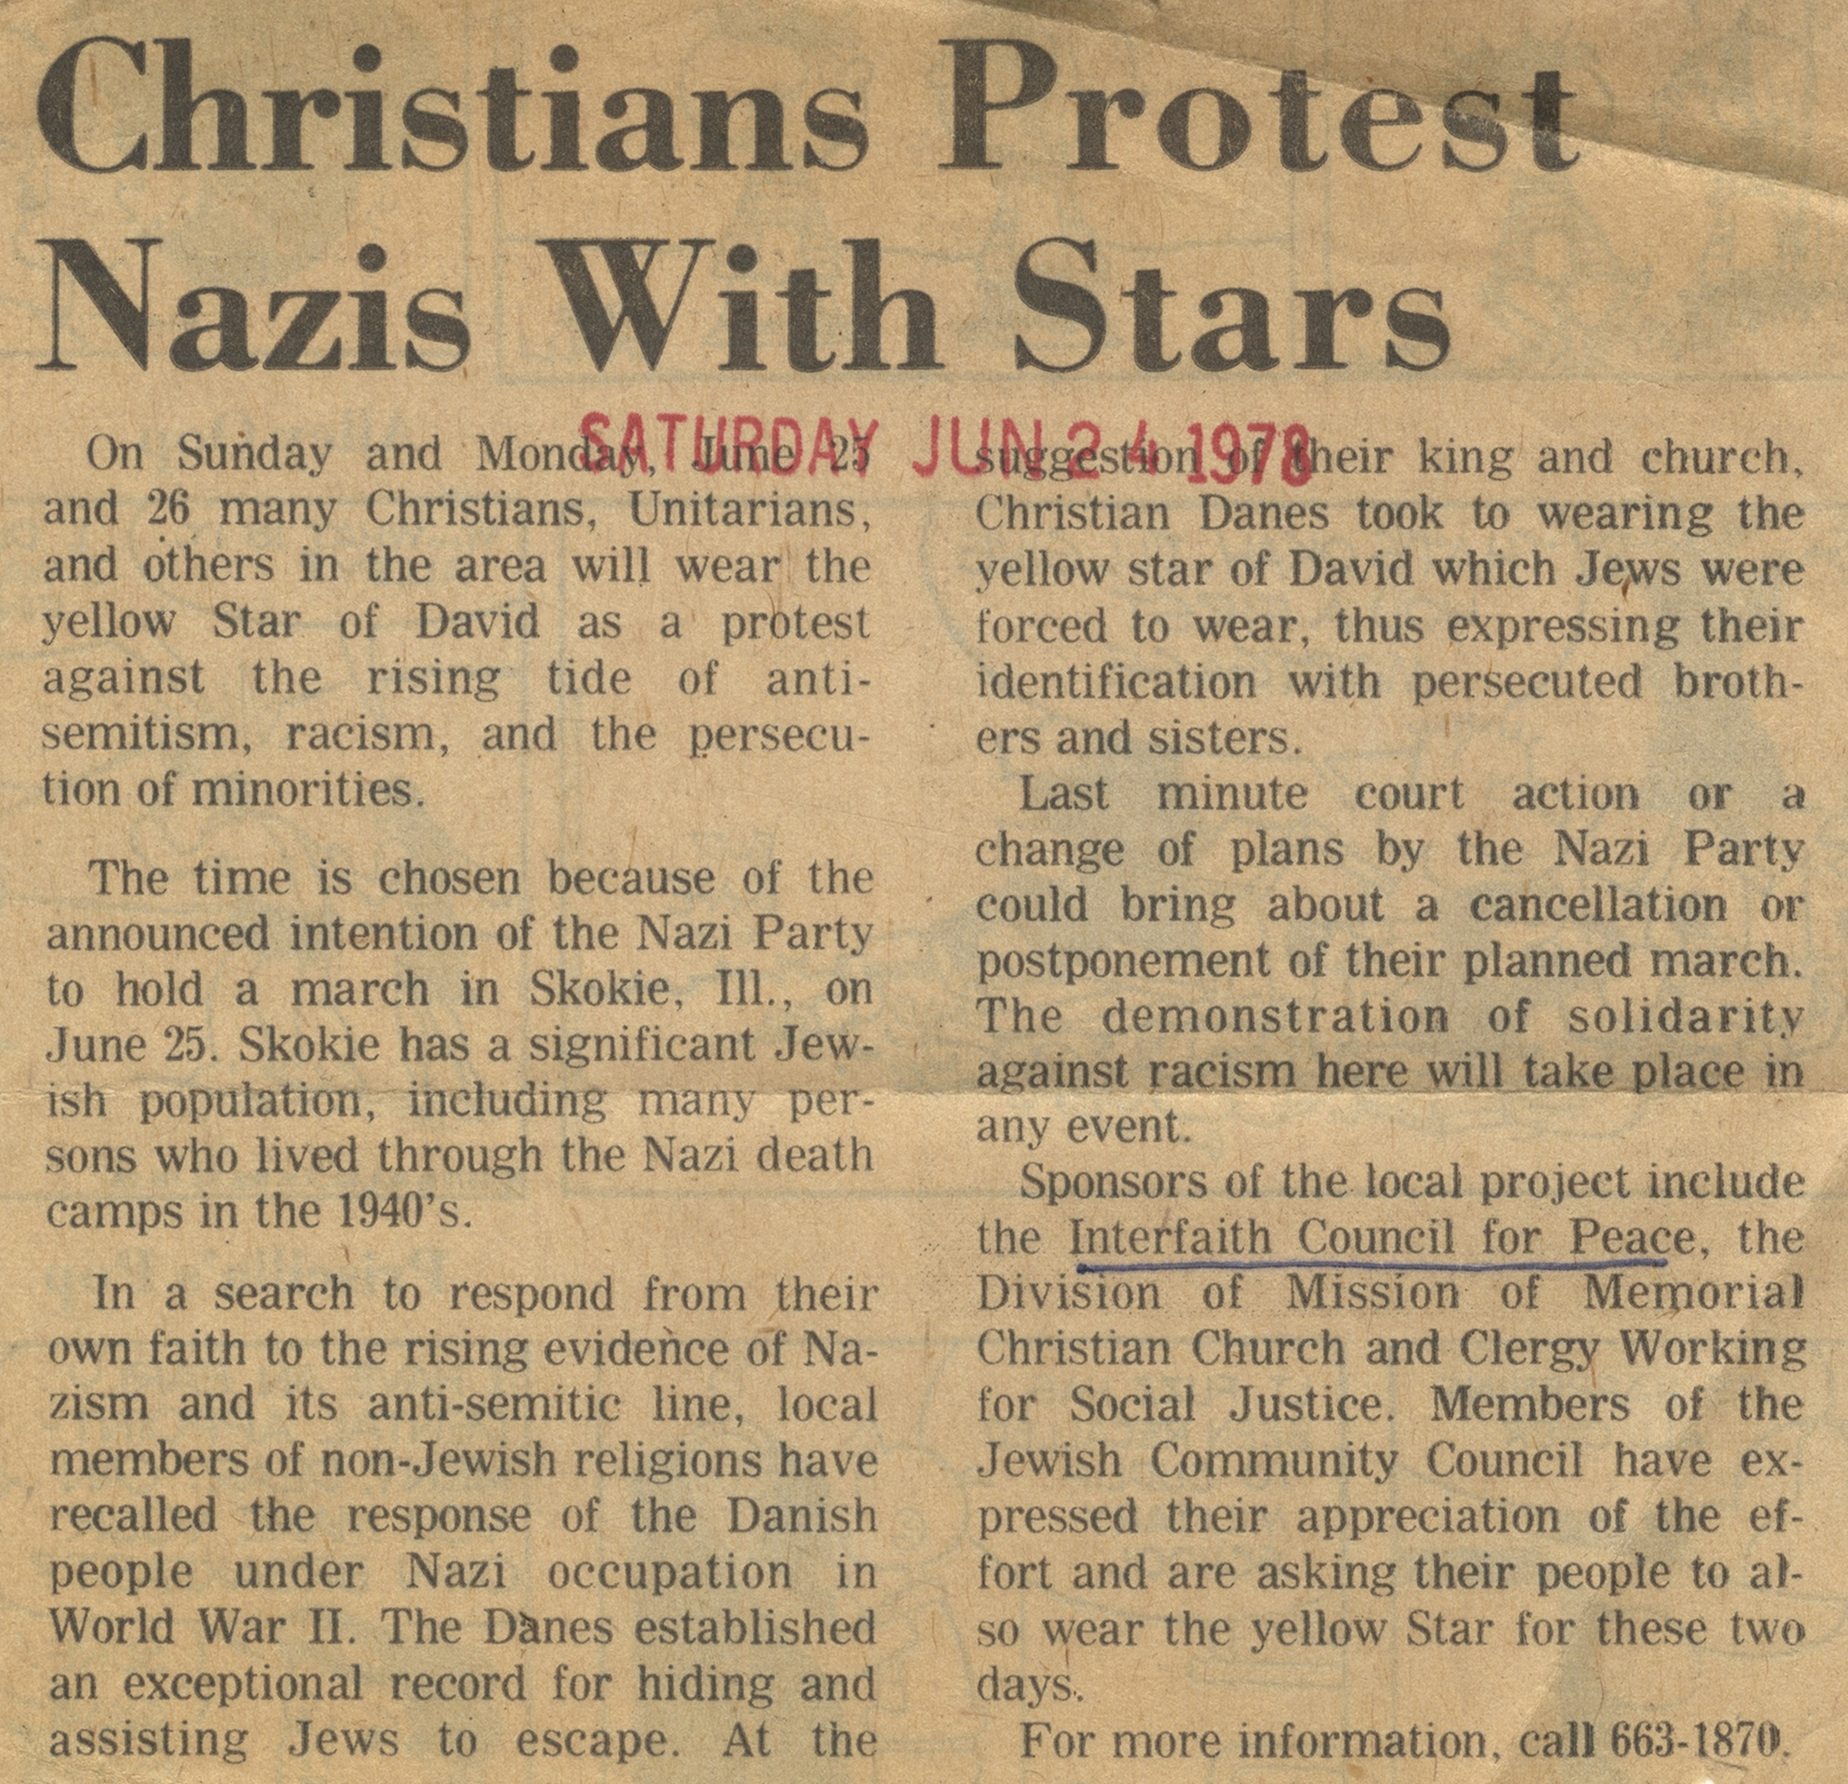 Christians Protest Nazis With Stars image